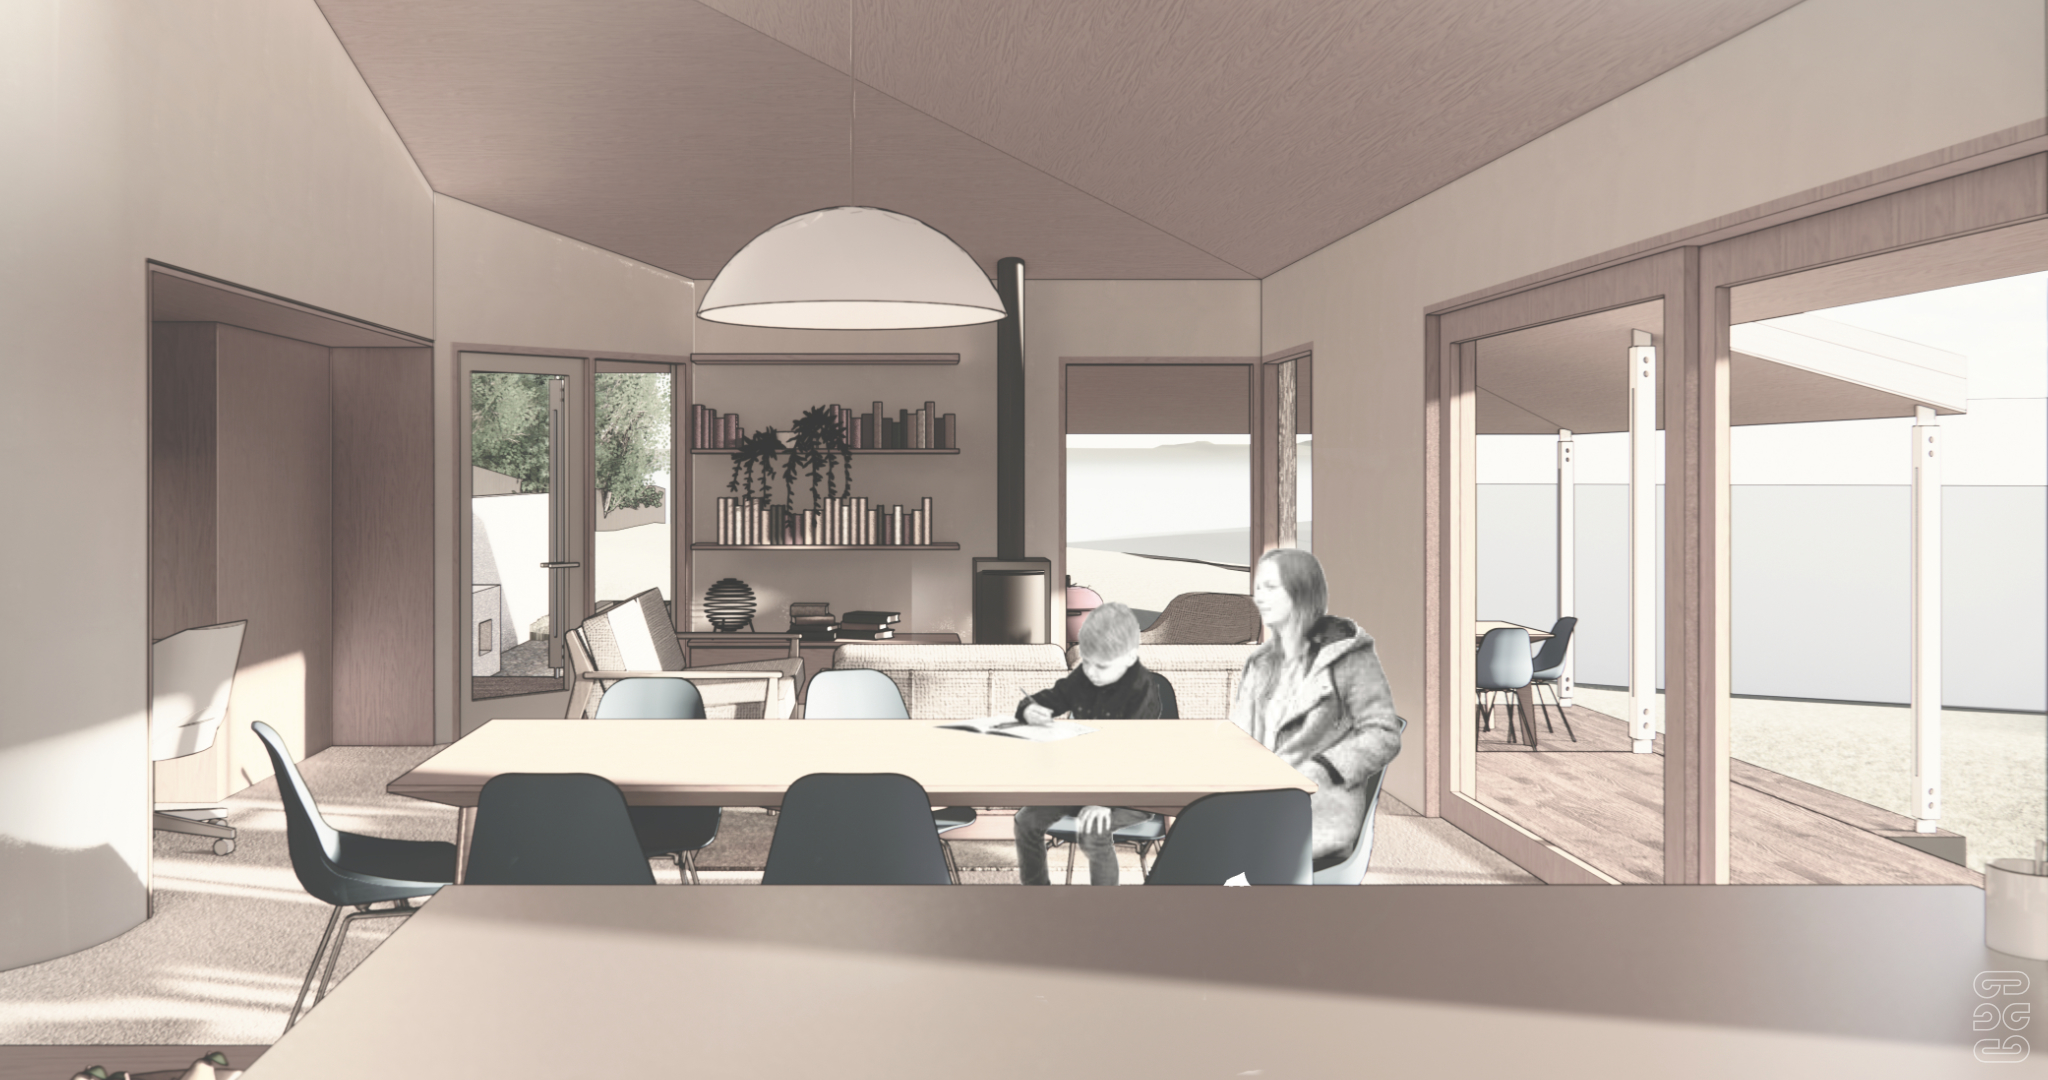 Taupo Passive House - 3D View 03.jpg